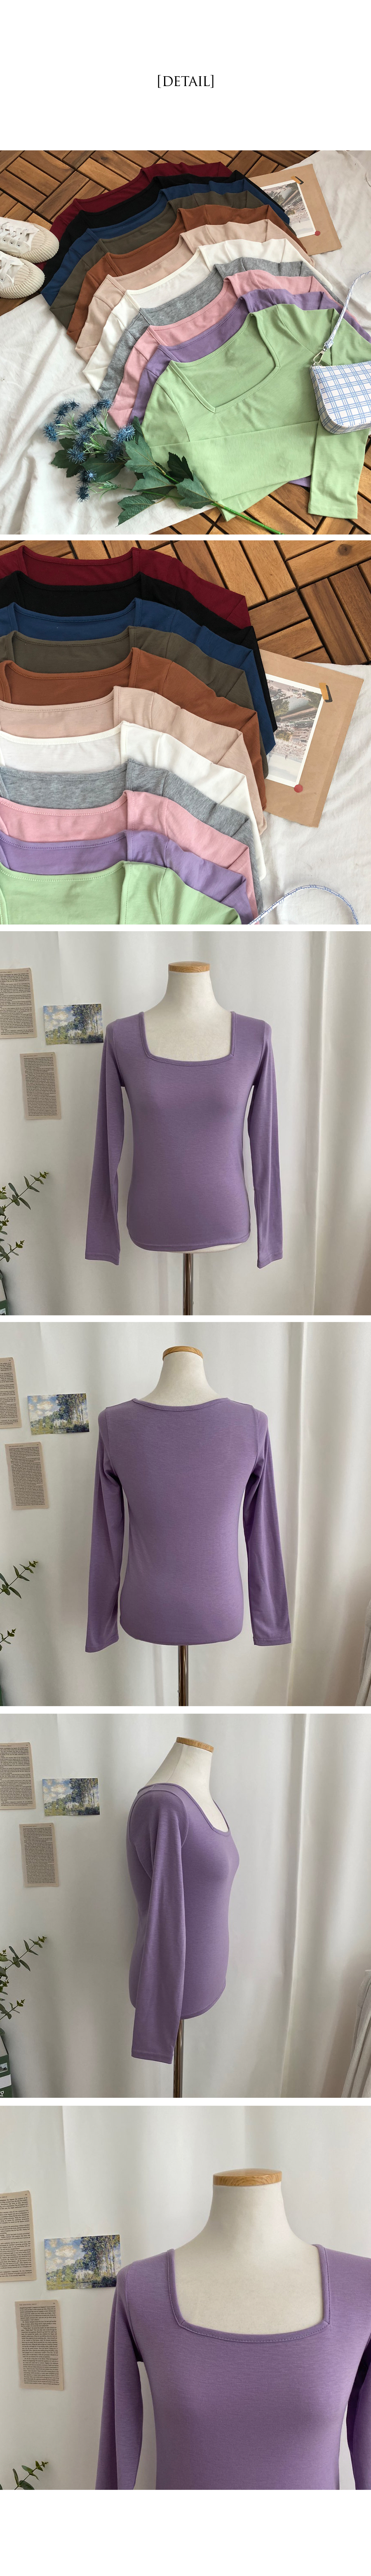 Classic Square Neck Long Sleeve T-Shirt